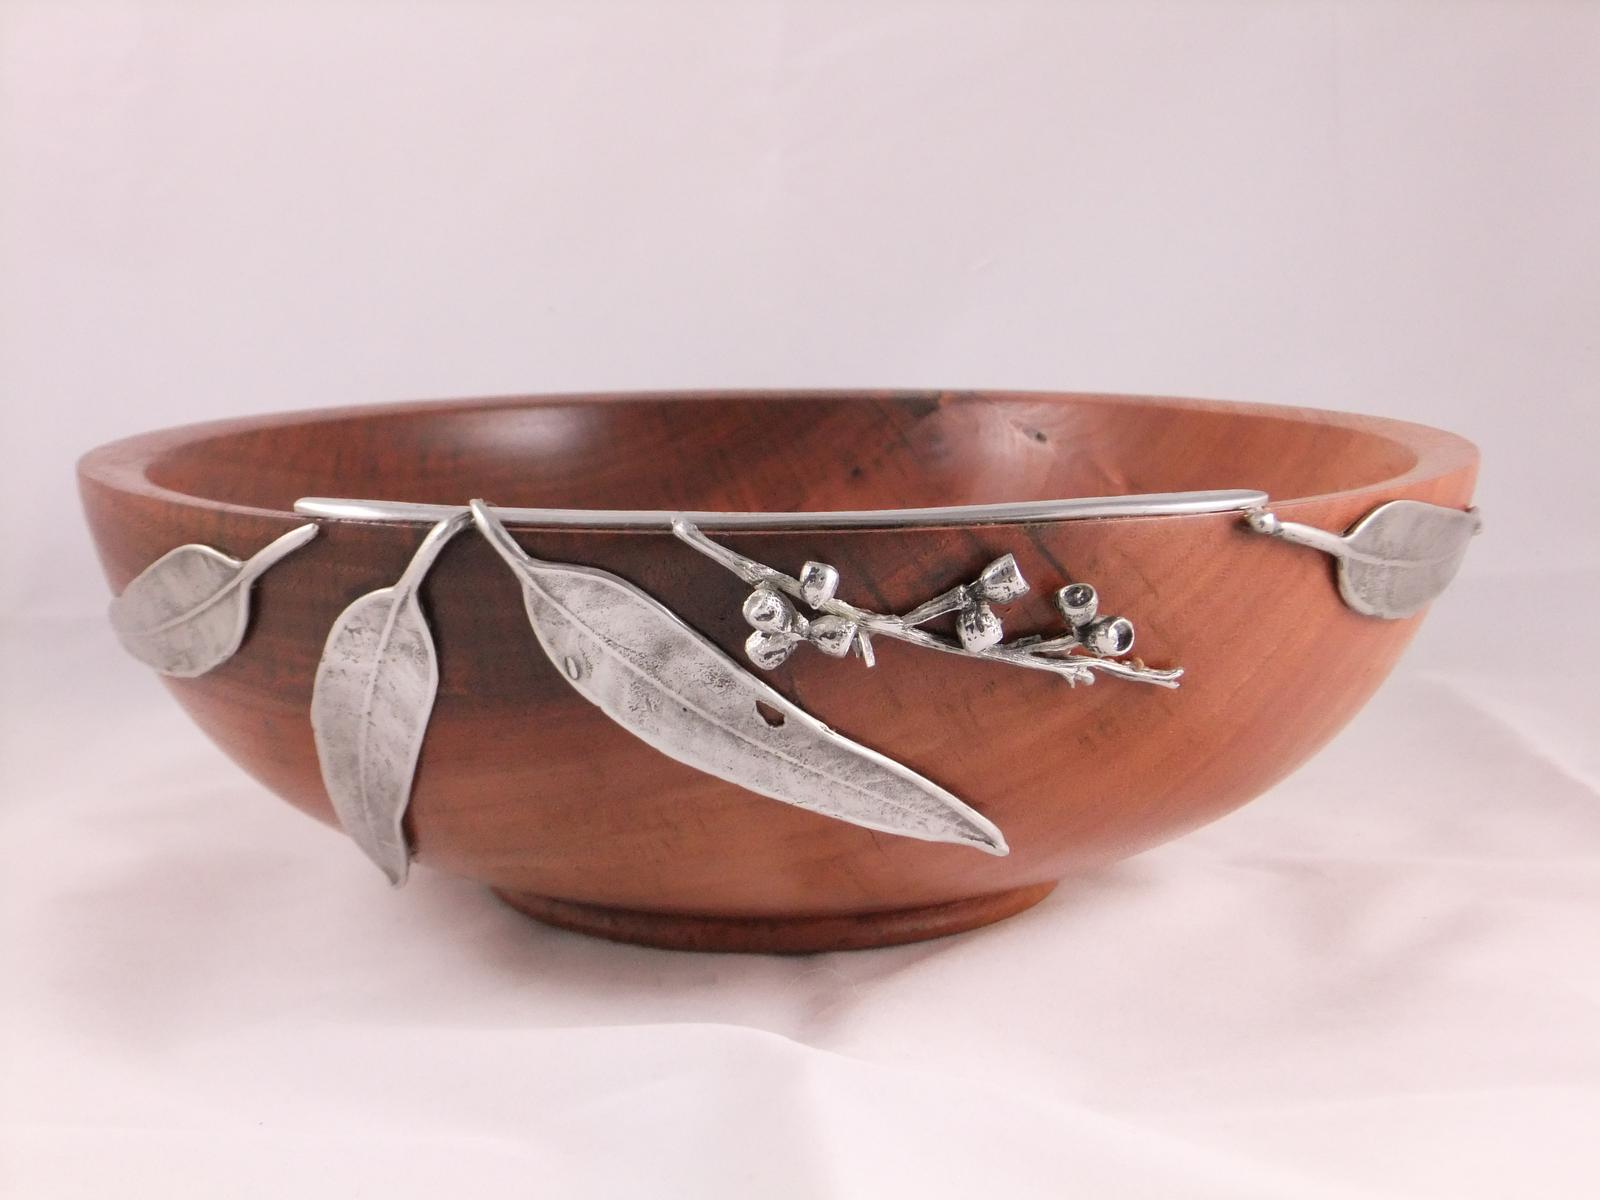 Salad Bowl with Pewter gumleaves